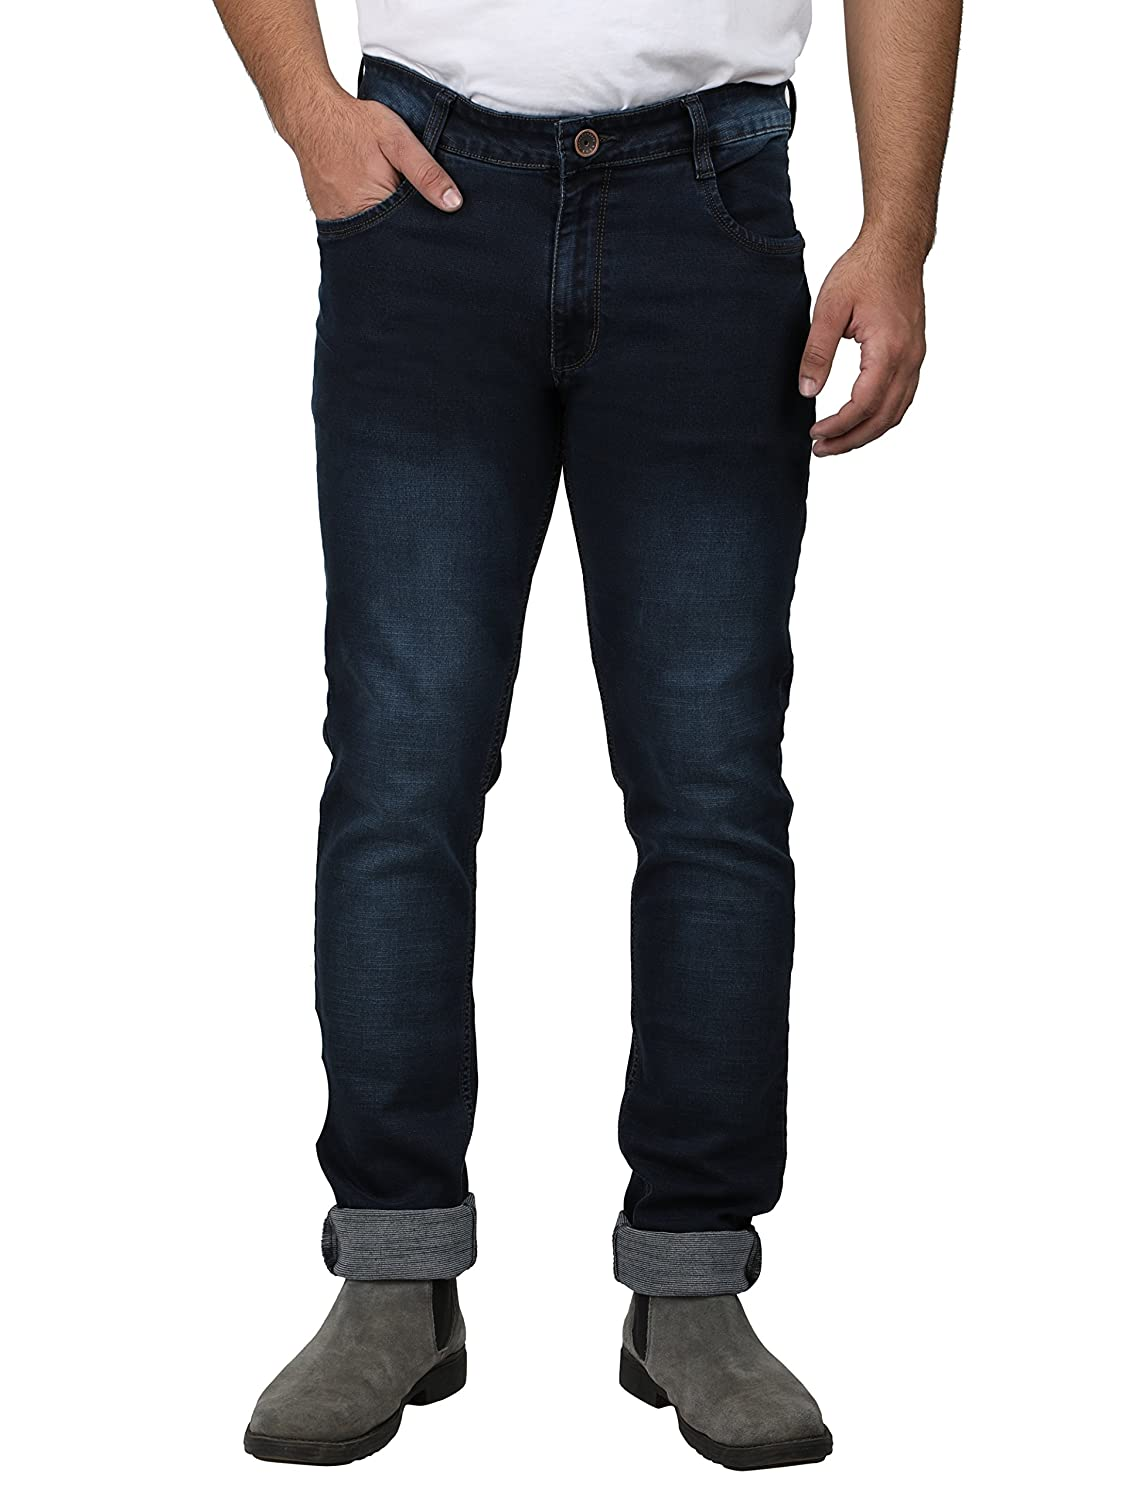 Buy Asaba New Jeans Strechable Denim For Men Slim Fit Casual Straight 8135 Designer Denim Blue Color Fashion Branded Mens Great Quality Best Price Comfort Fitting Size 40 Plus Size Gents Range